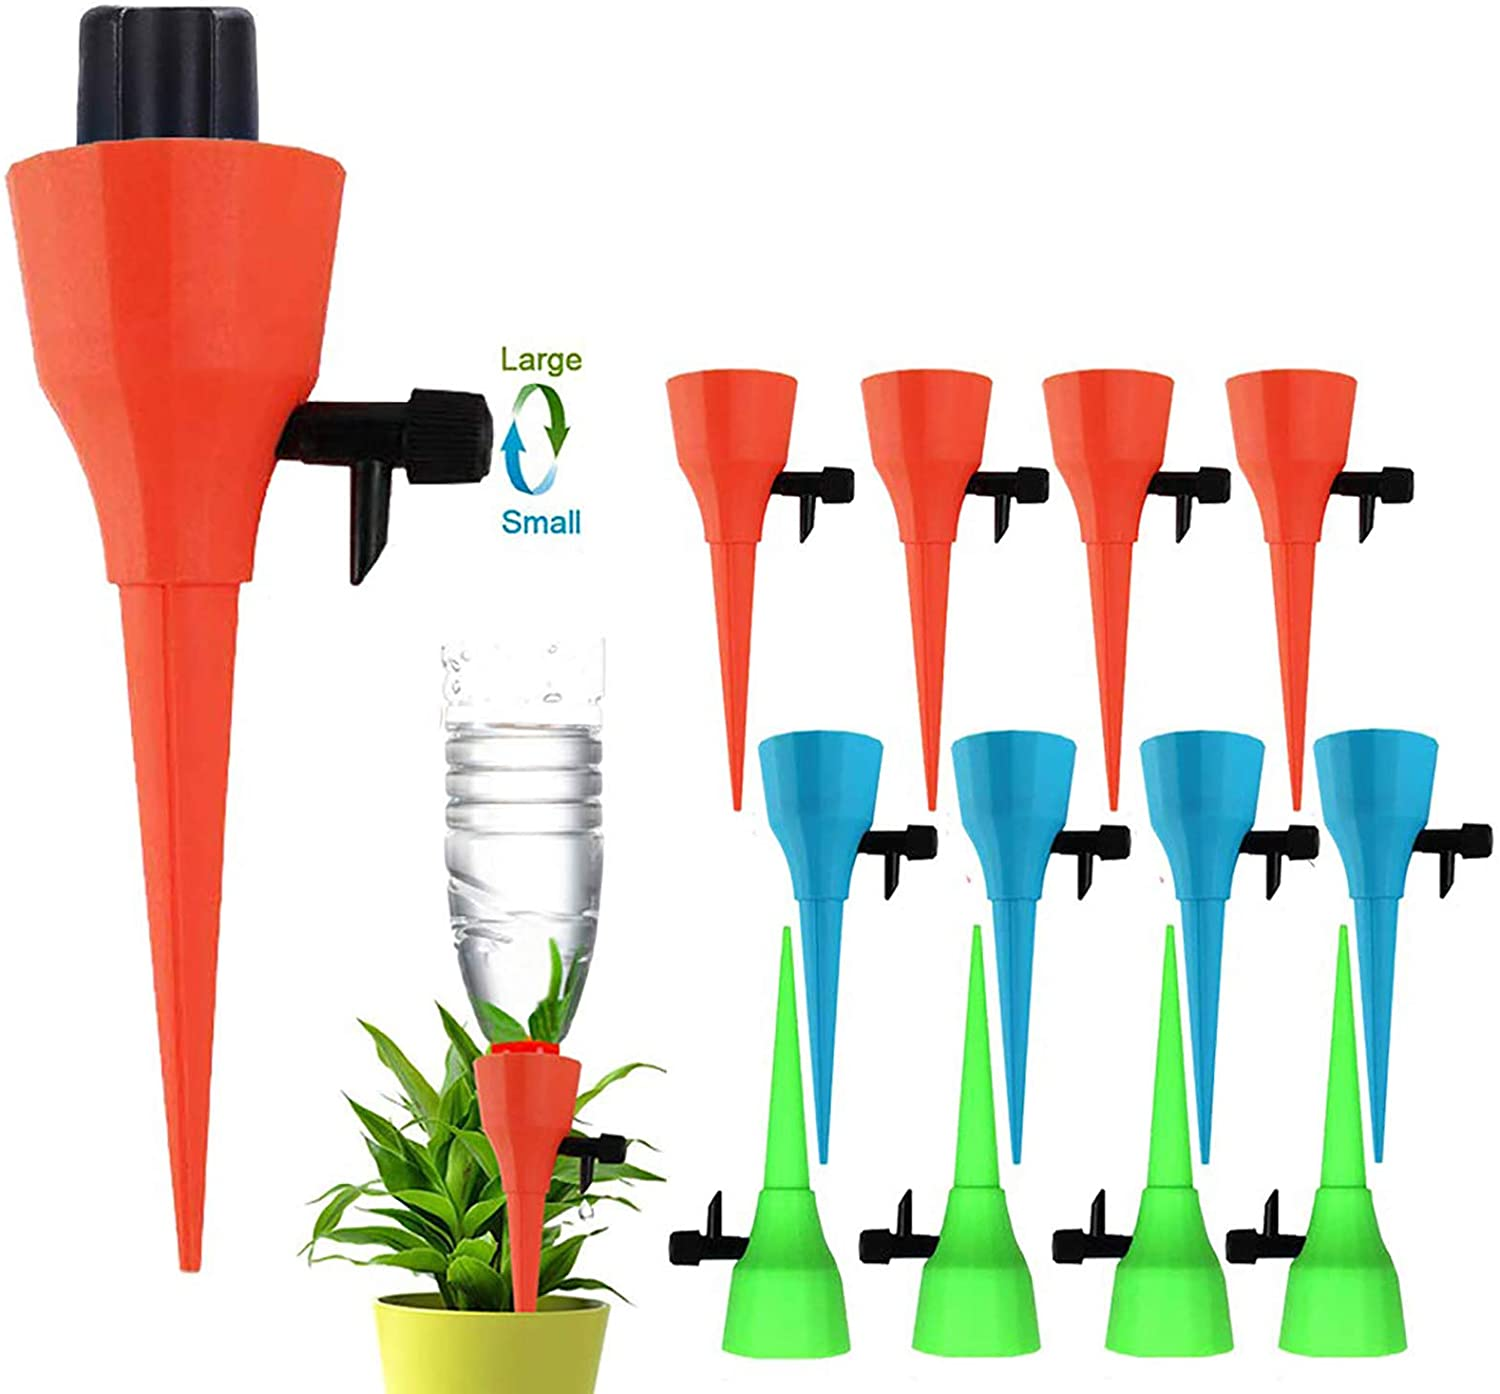 OZMI Plant Self Watering Spikes Devices, 12 Pack Automatic Irrigation Equipment Plant Waterer with Slow Release Control Valve, Adjustable Water Volume Drip System for Home and Vacation Plant Watering